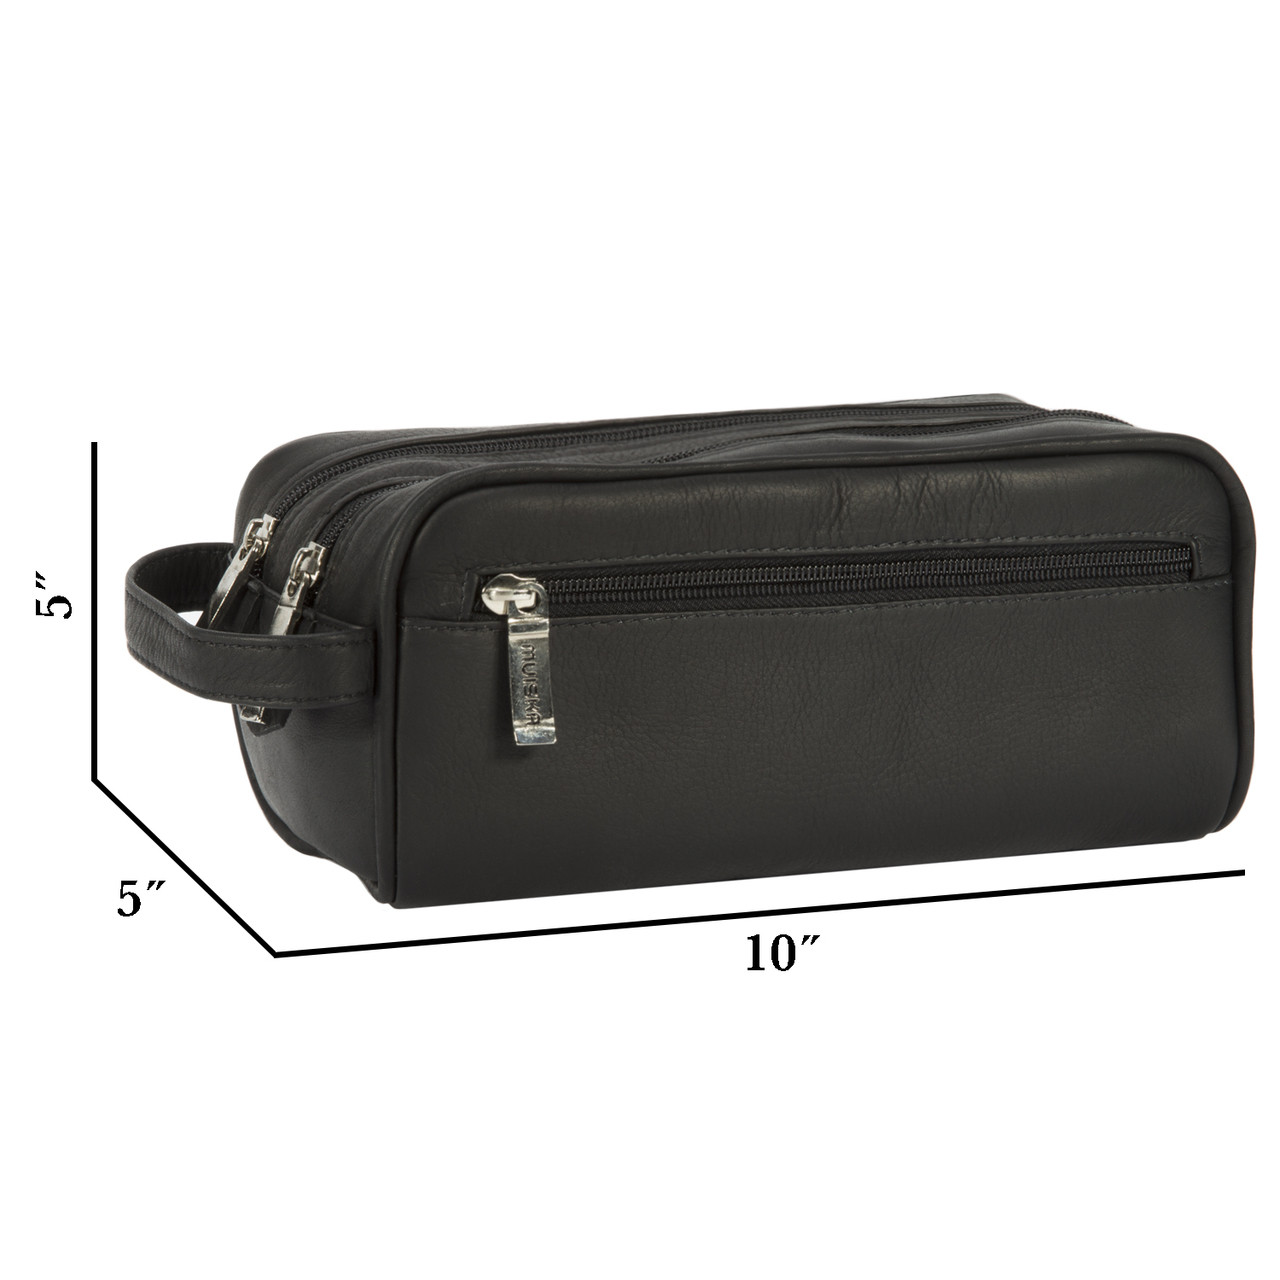 Muiska - Tomas -Leather Double Zip Toiletry Kit is compact yet surprisingly roomy